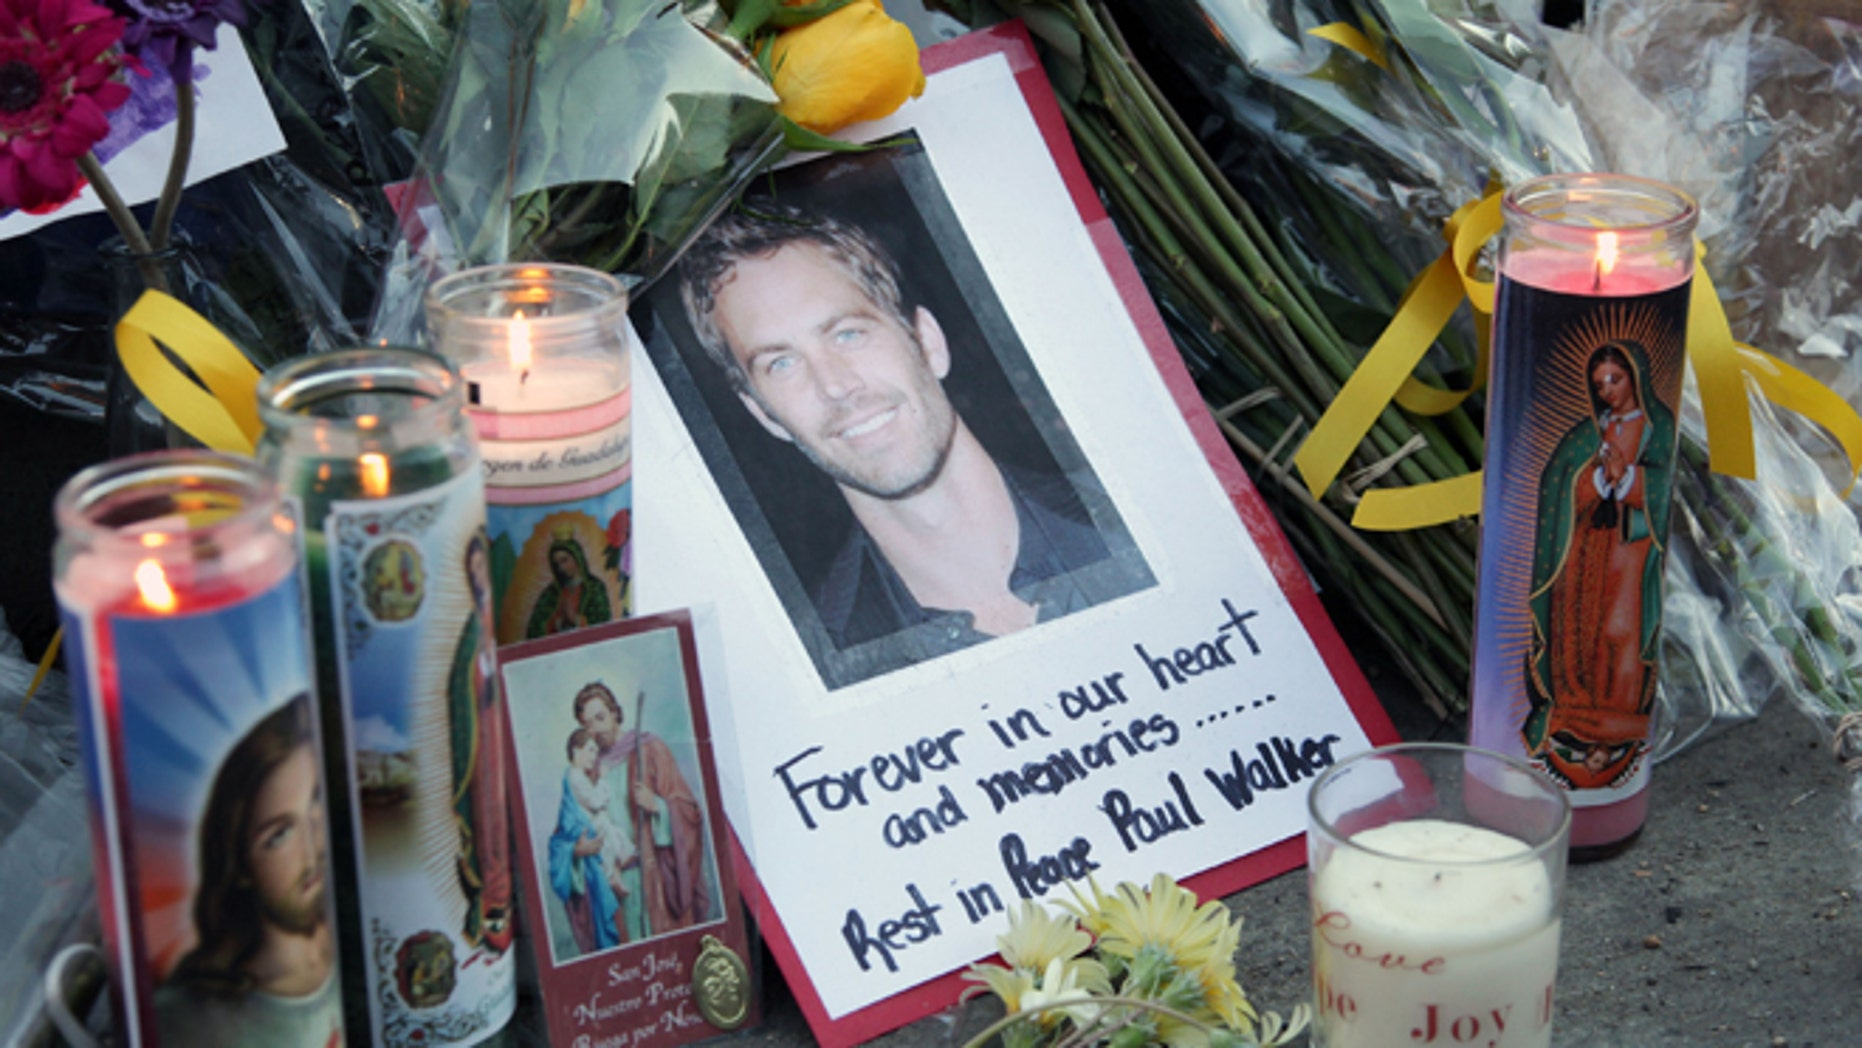 VALENCIA, CA - DECEMBER 01:  A general view of atmosphere as fans pay tribute to actor Paul Walker at the site of his fatal car accident on December 1, 2013 in Valencia, California.  Walker died on November 30, 2013 at age 40. (Photo by David Buchan/Getty Images)